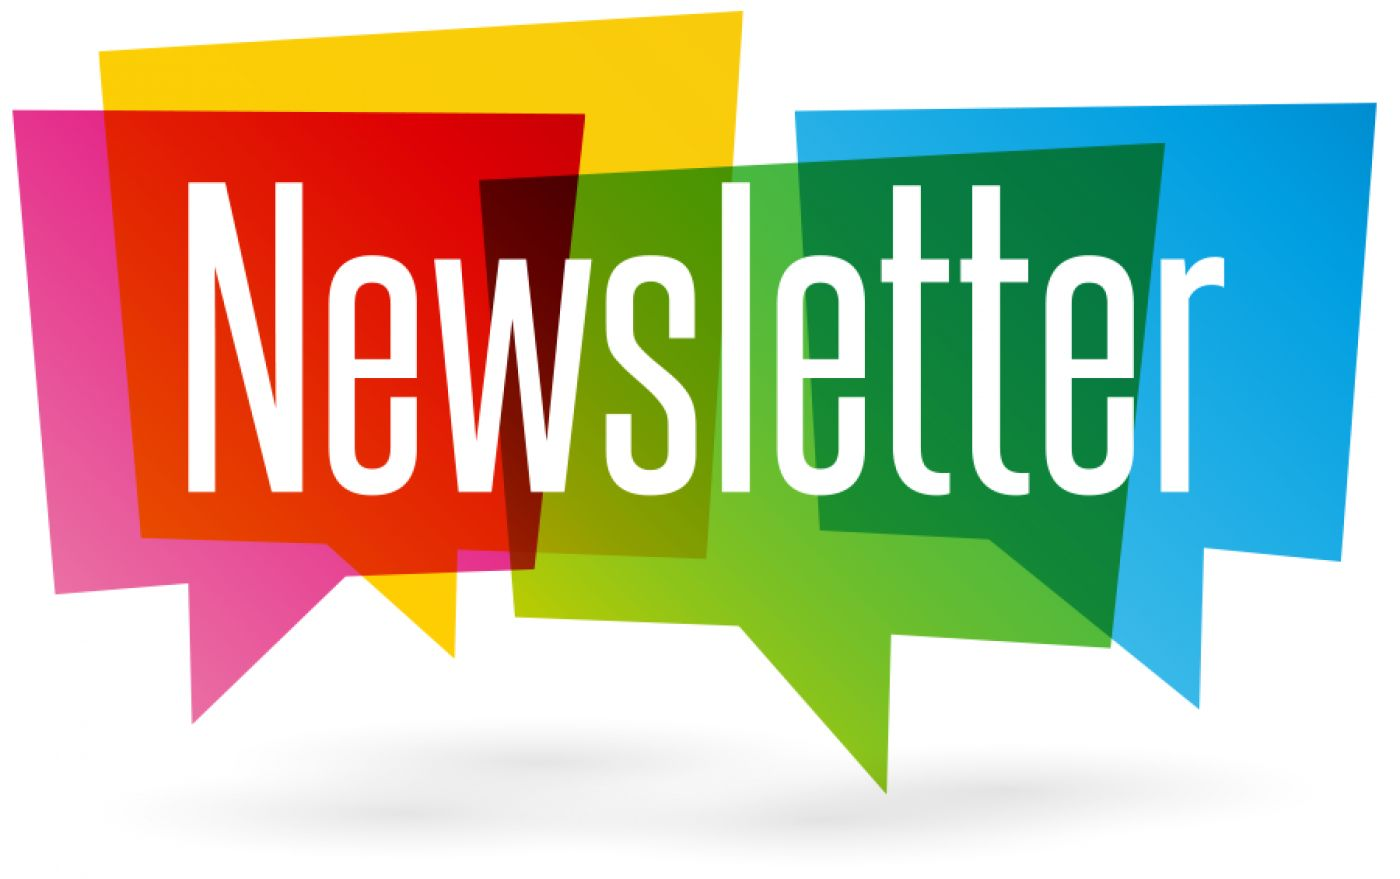 Email Newsletter and Calendar